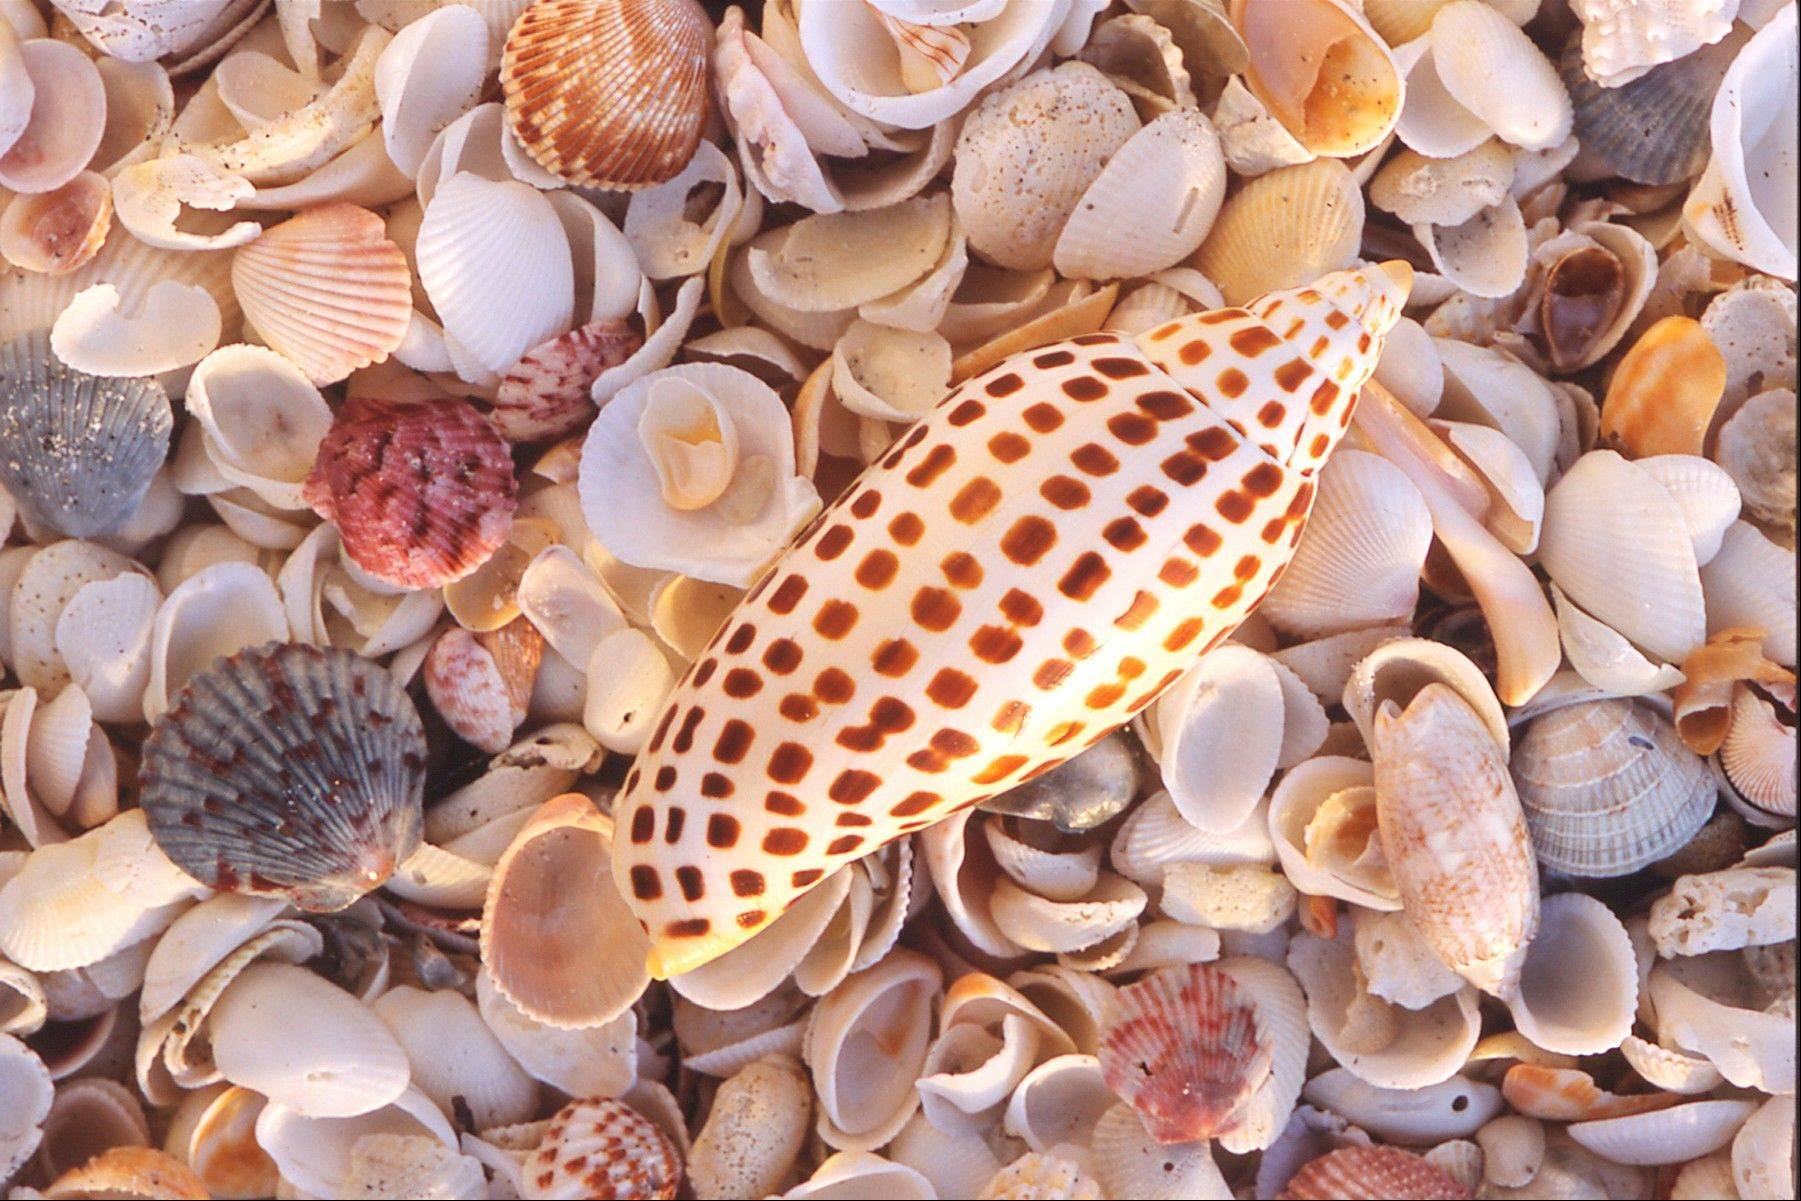 A junonia shell amid an array of seashells found on the beaches of Sanibel Island. The Gulf Coast barrier island is known for quiet beaches, wildlife and good opportunities for finding seashells, especially for visitors who are motivated to check tide tables and comb the beaches at dawn and after dark.